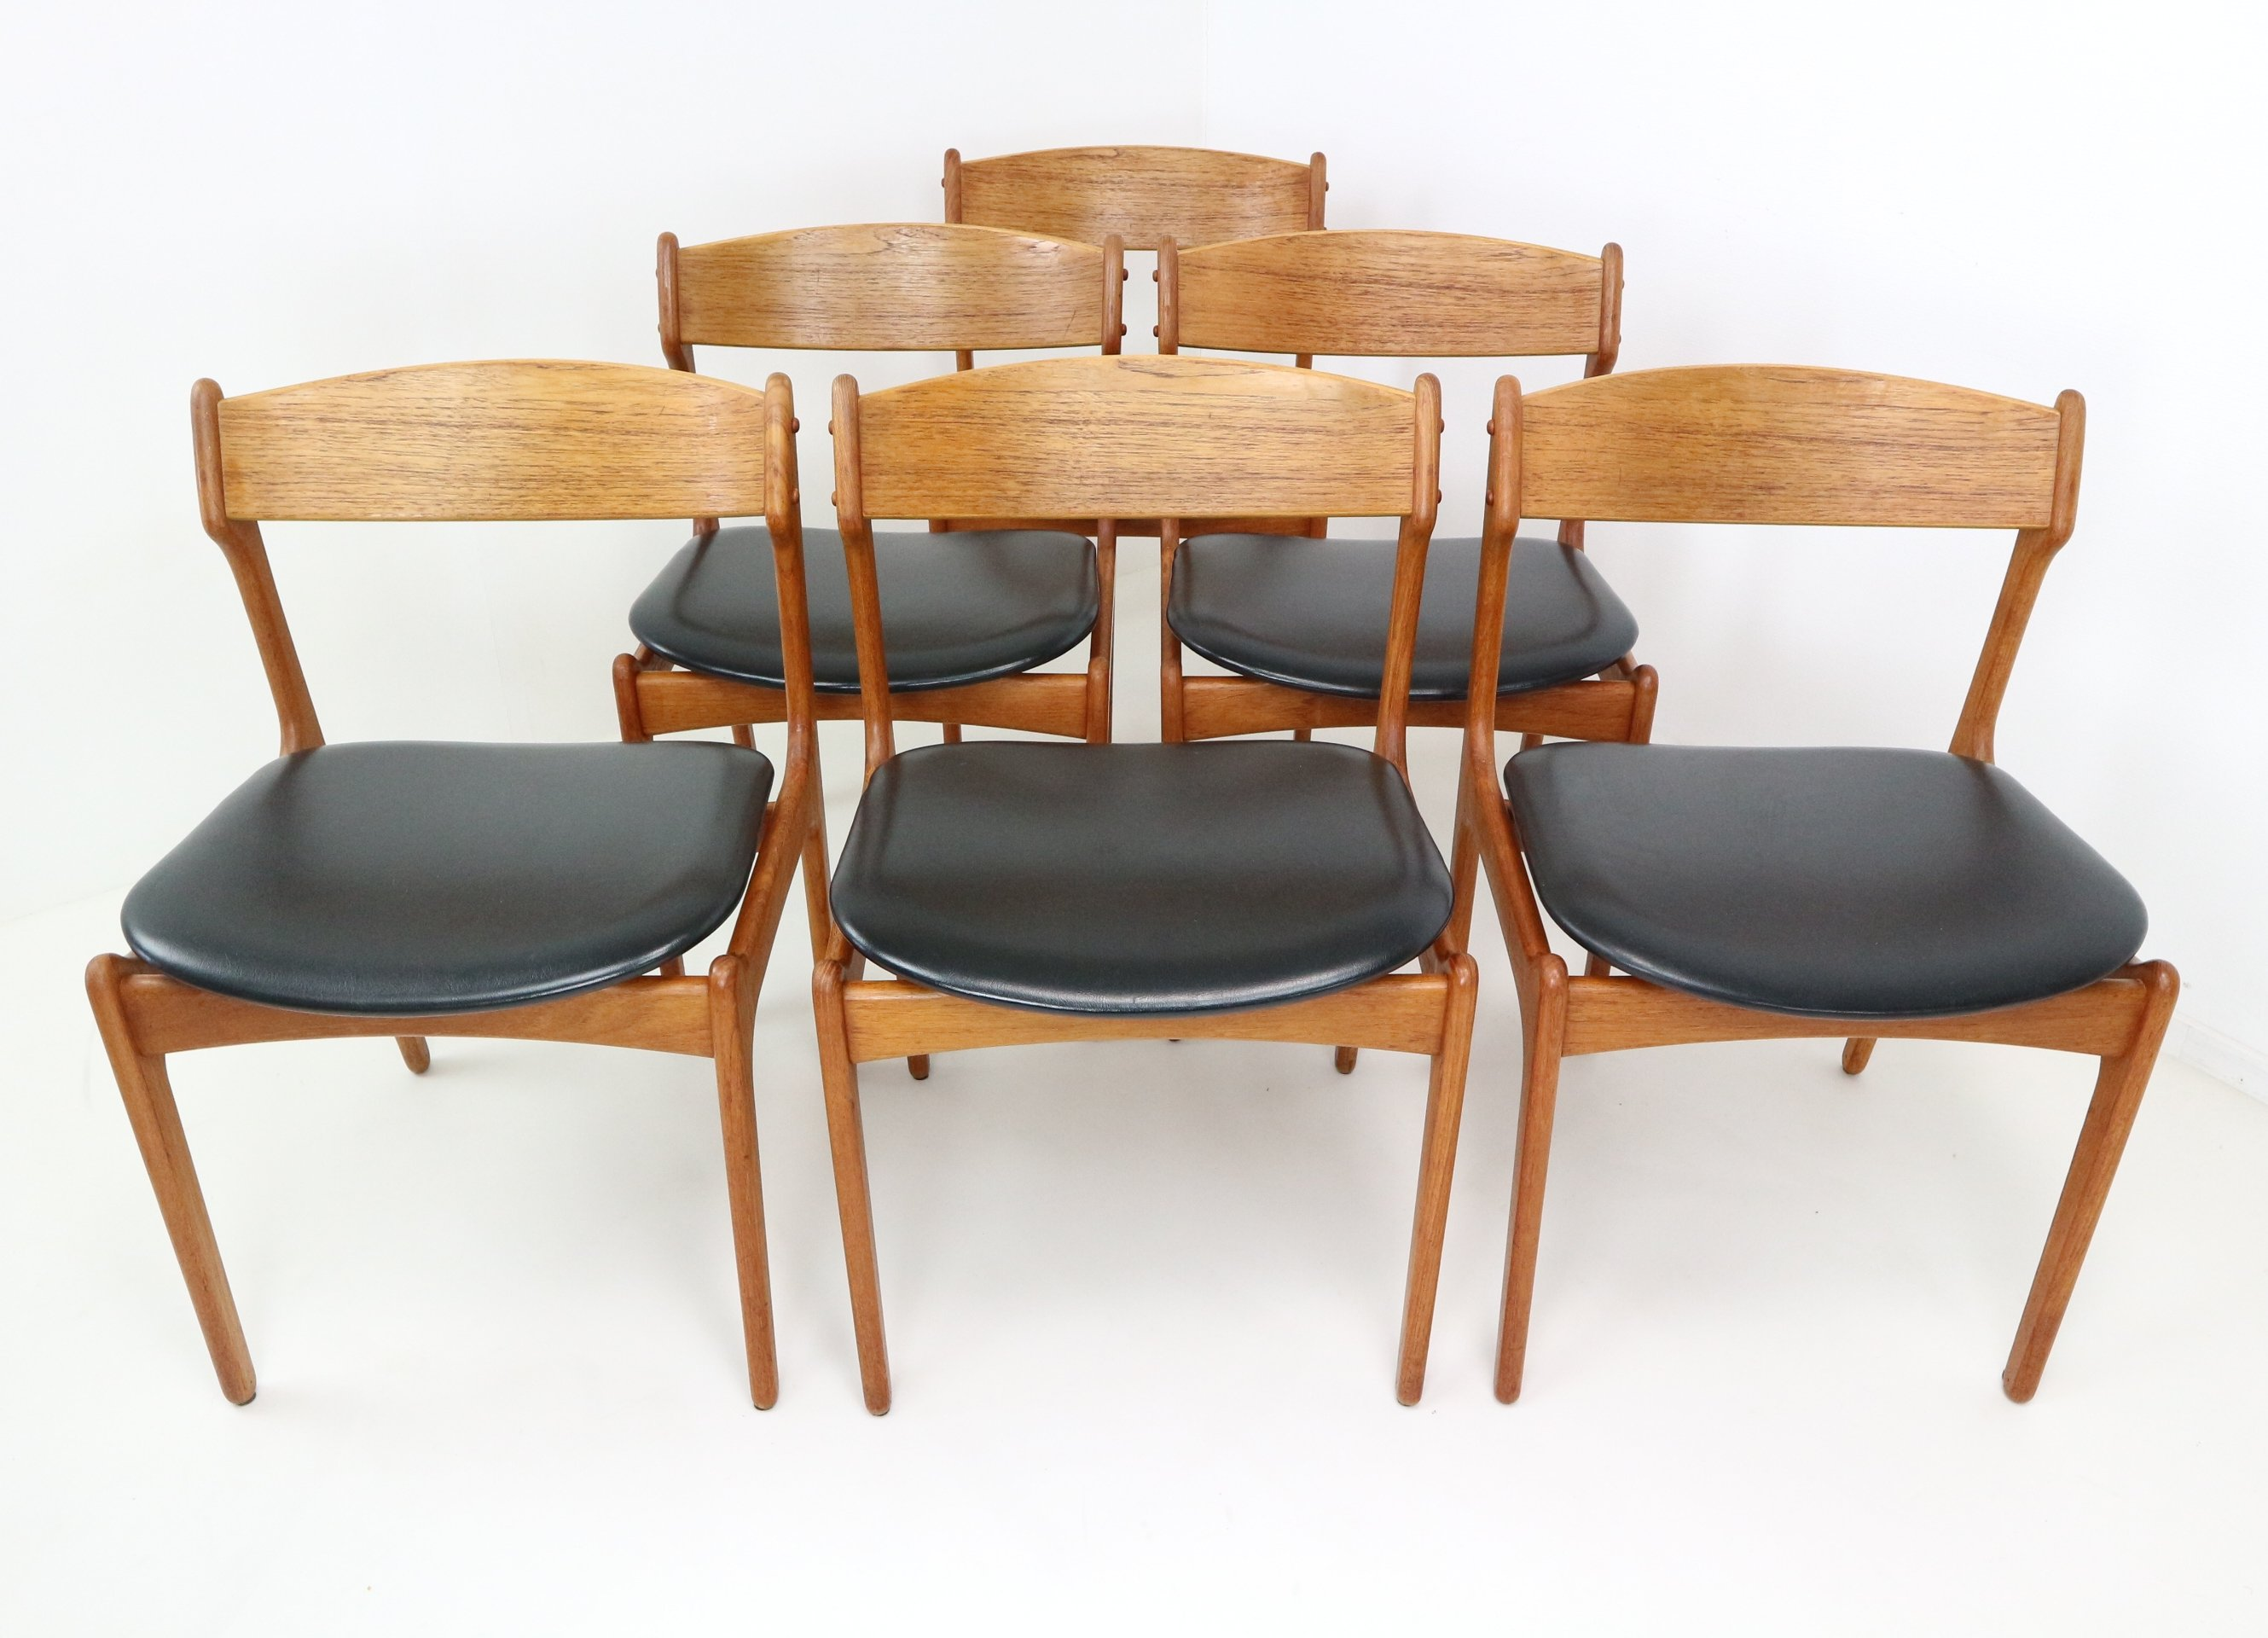 Set of Six Danish Teak Dining Chairs Designed by Erik Buch for OD